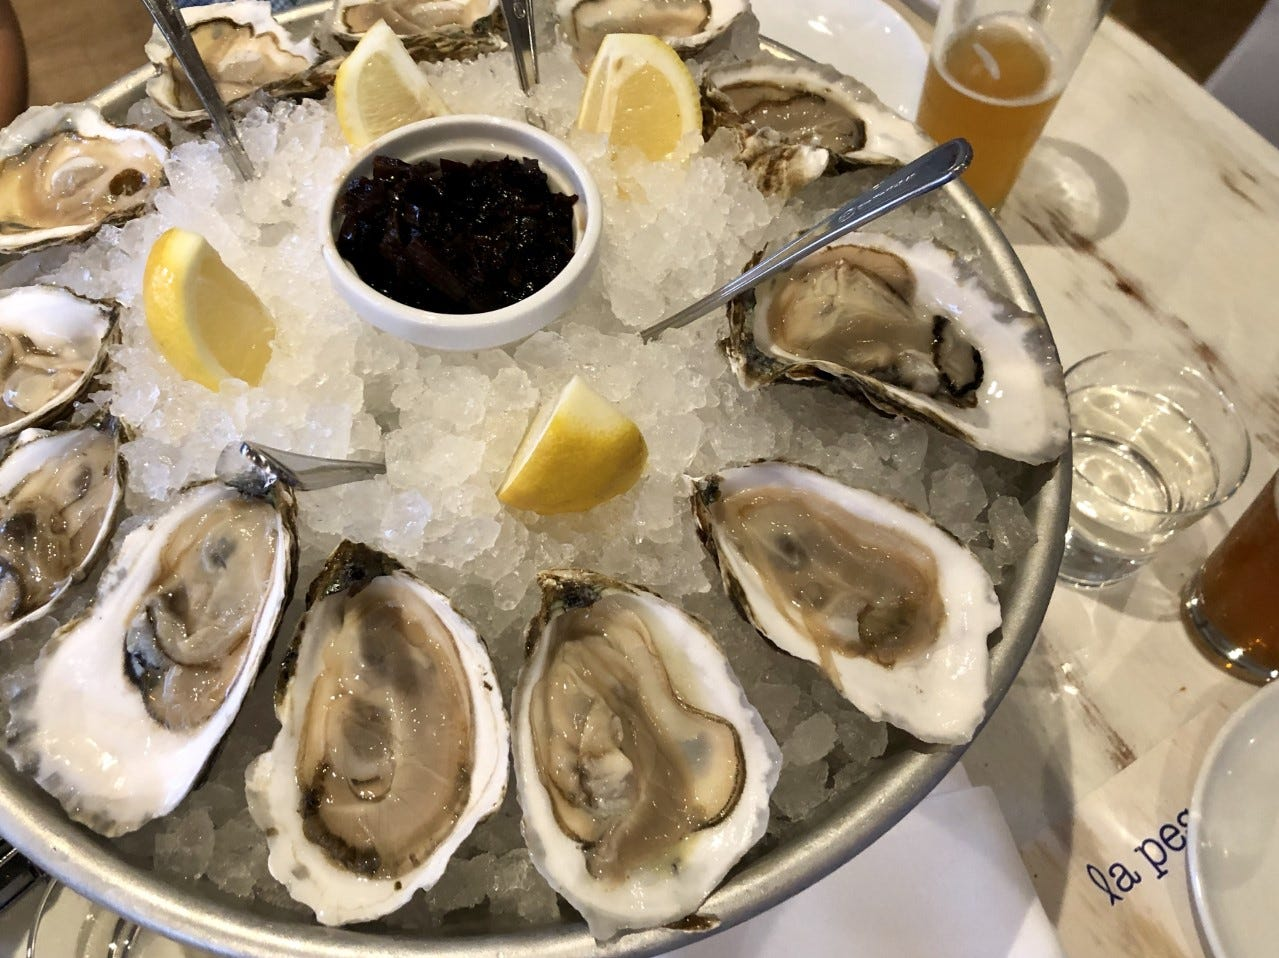 A platter of cold-water oysters from La Pescheria. The oysters were a tad dry, but plump.